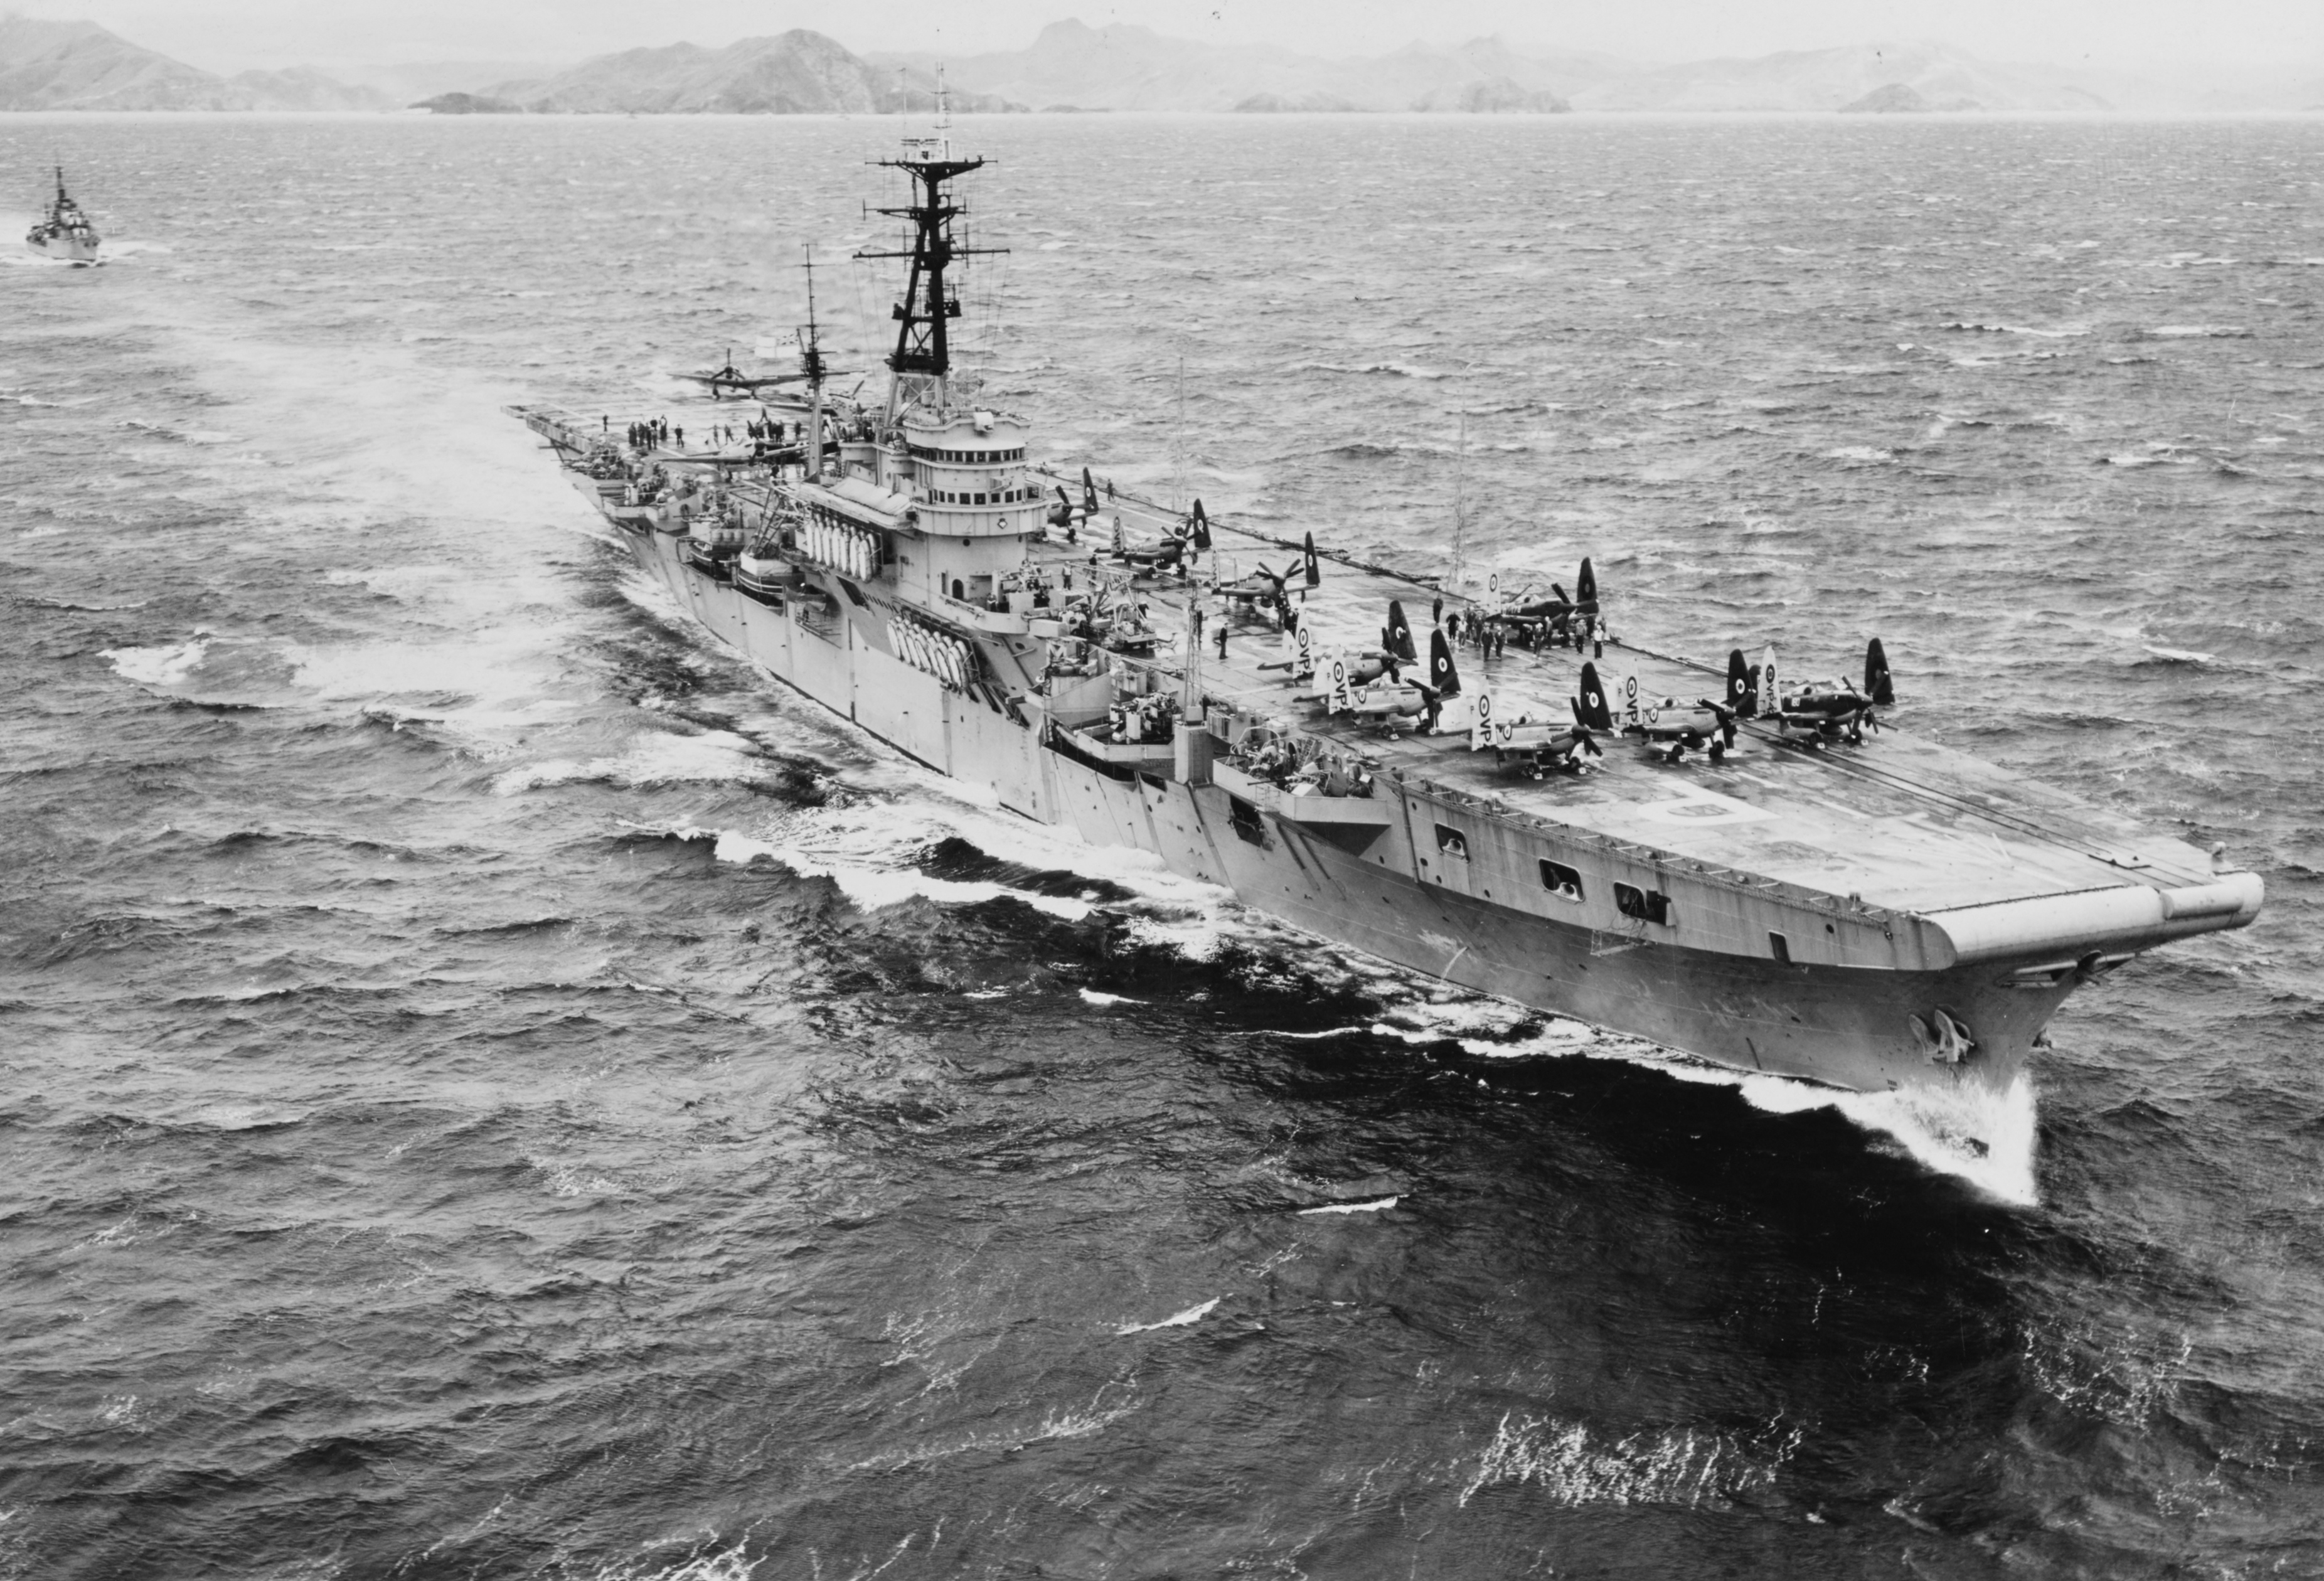 Hms Triumph John S Navy And Other Maritime Or Military News